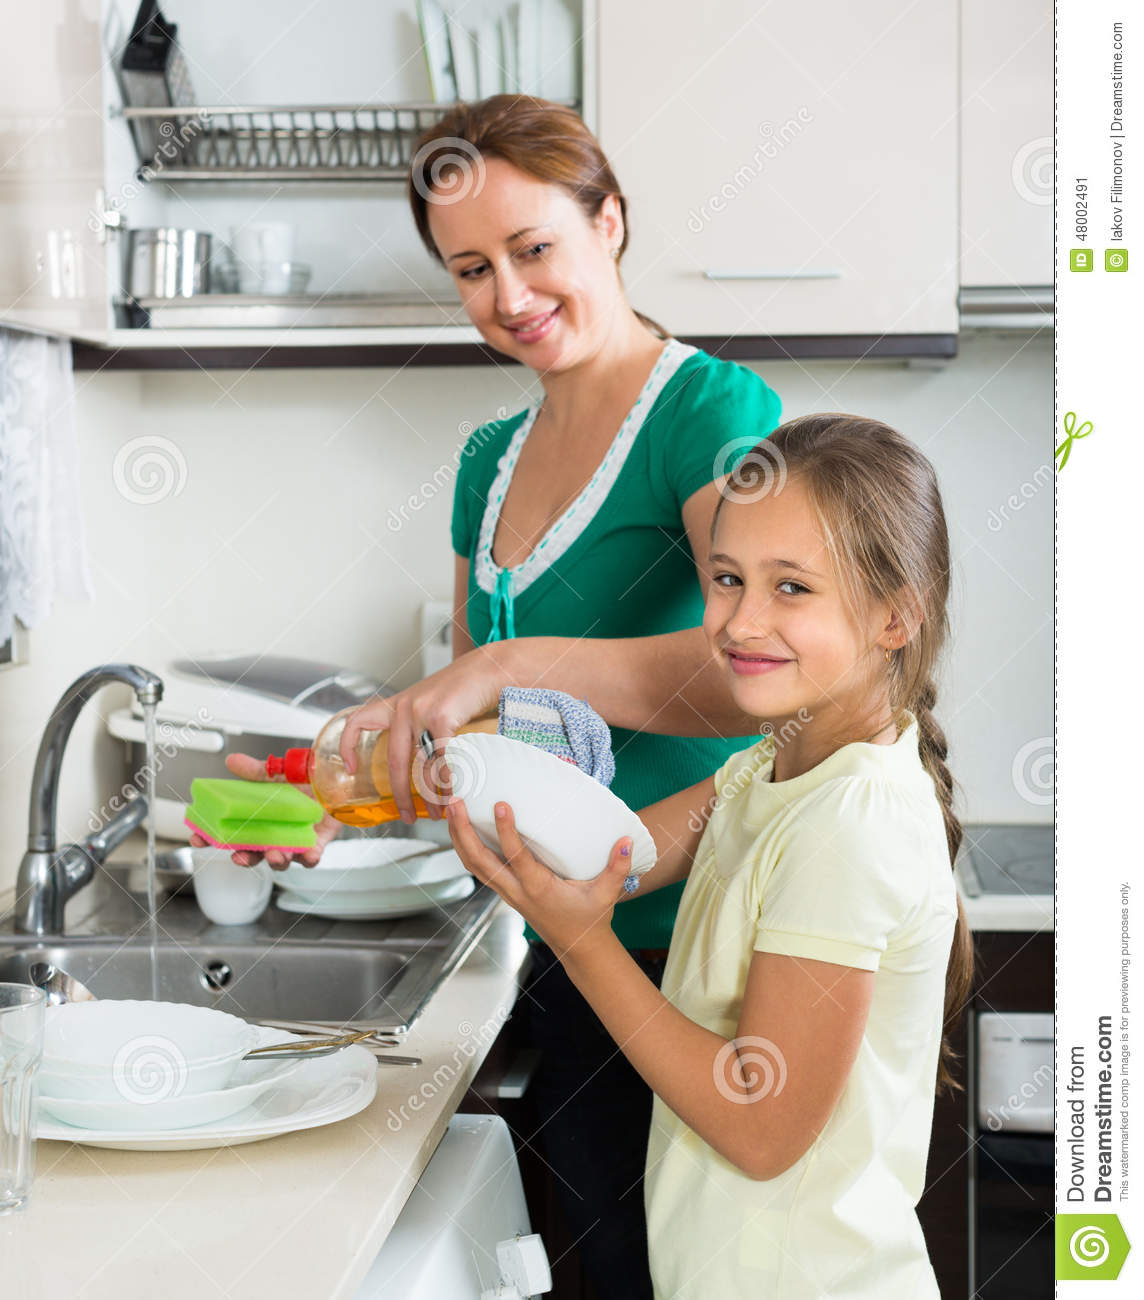 People Cleaning Kitchen: Mother With Daughter Cleaning At Kitchen Stock Image